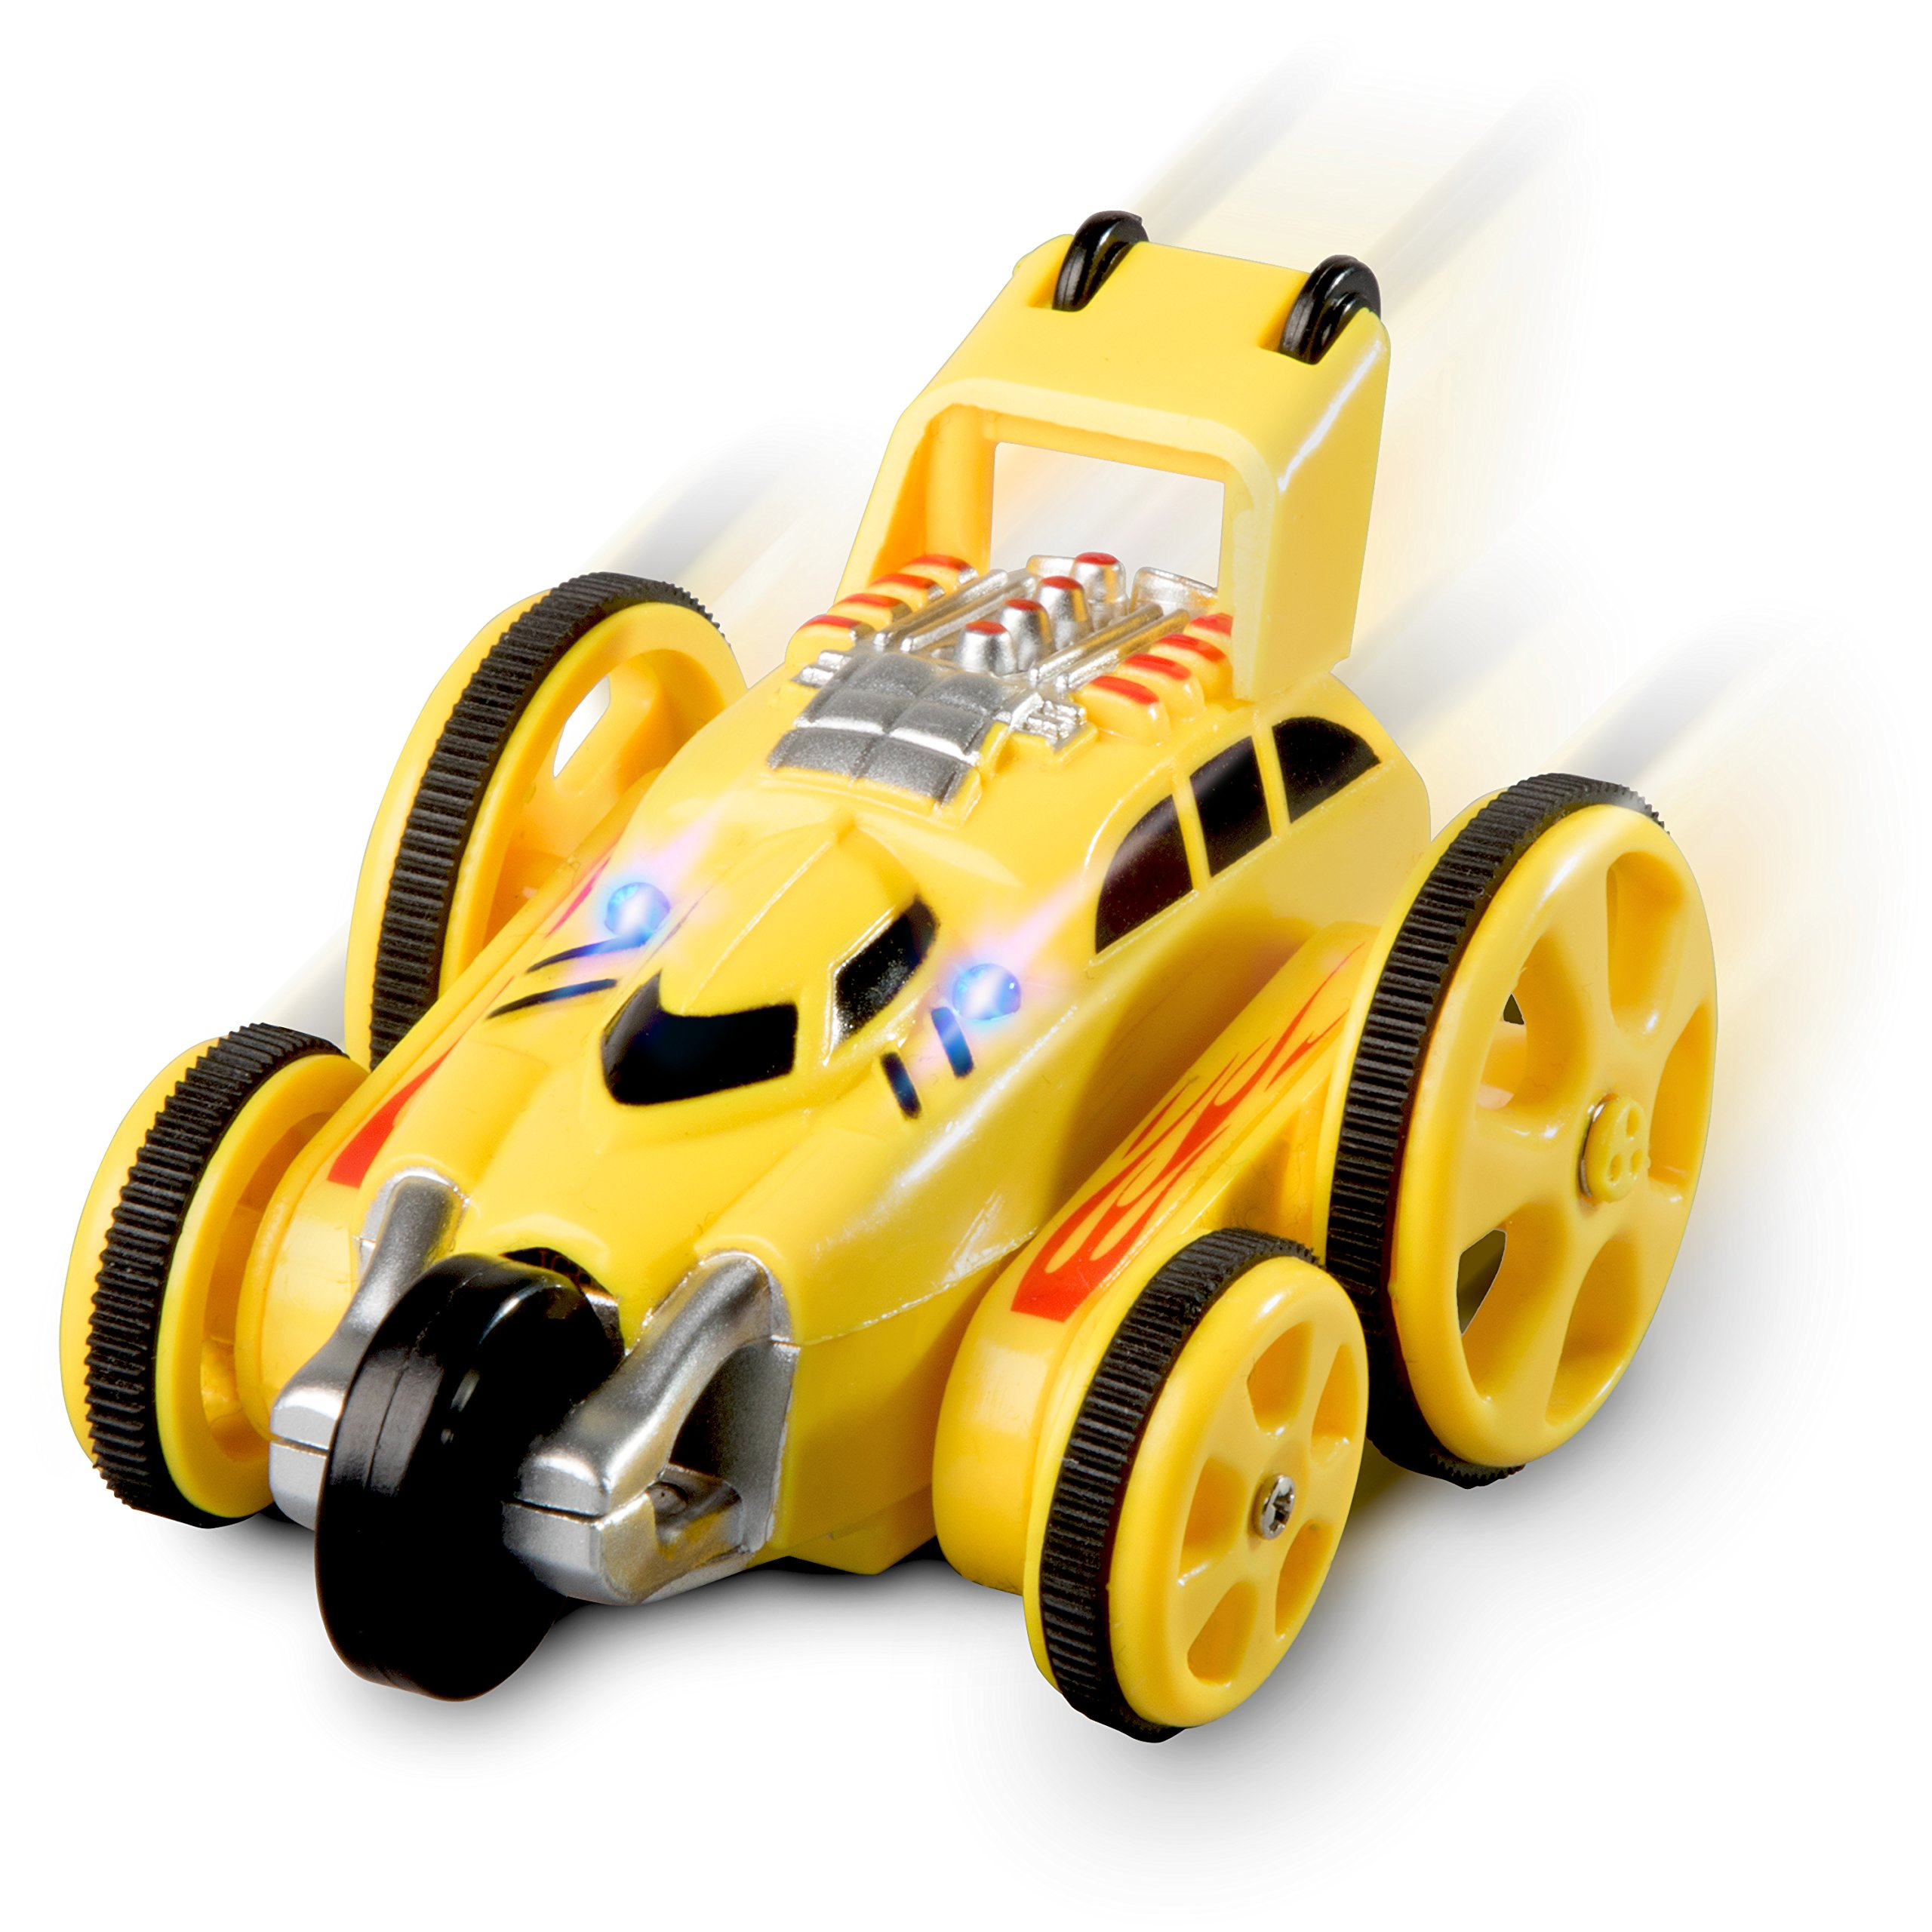 """Force1 Mini RC Cars for Kids - """"Rally Cat"""" Mini RC Car w/ Fast RC Car Rubber Tires and LED Lights for RC Cars for Adults and Kids (Color May Vary)"""